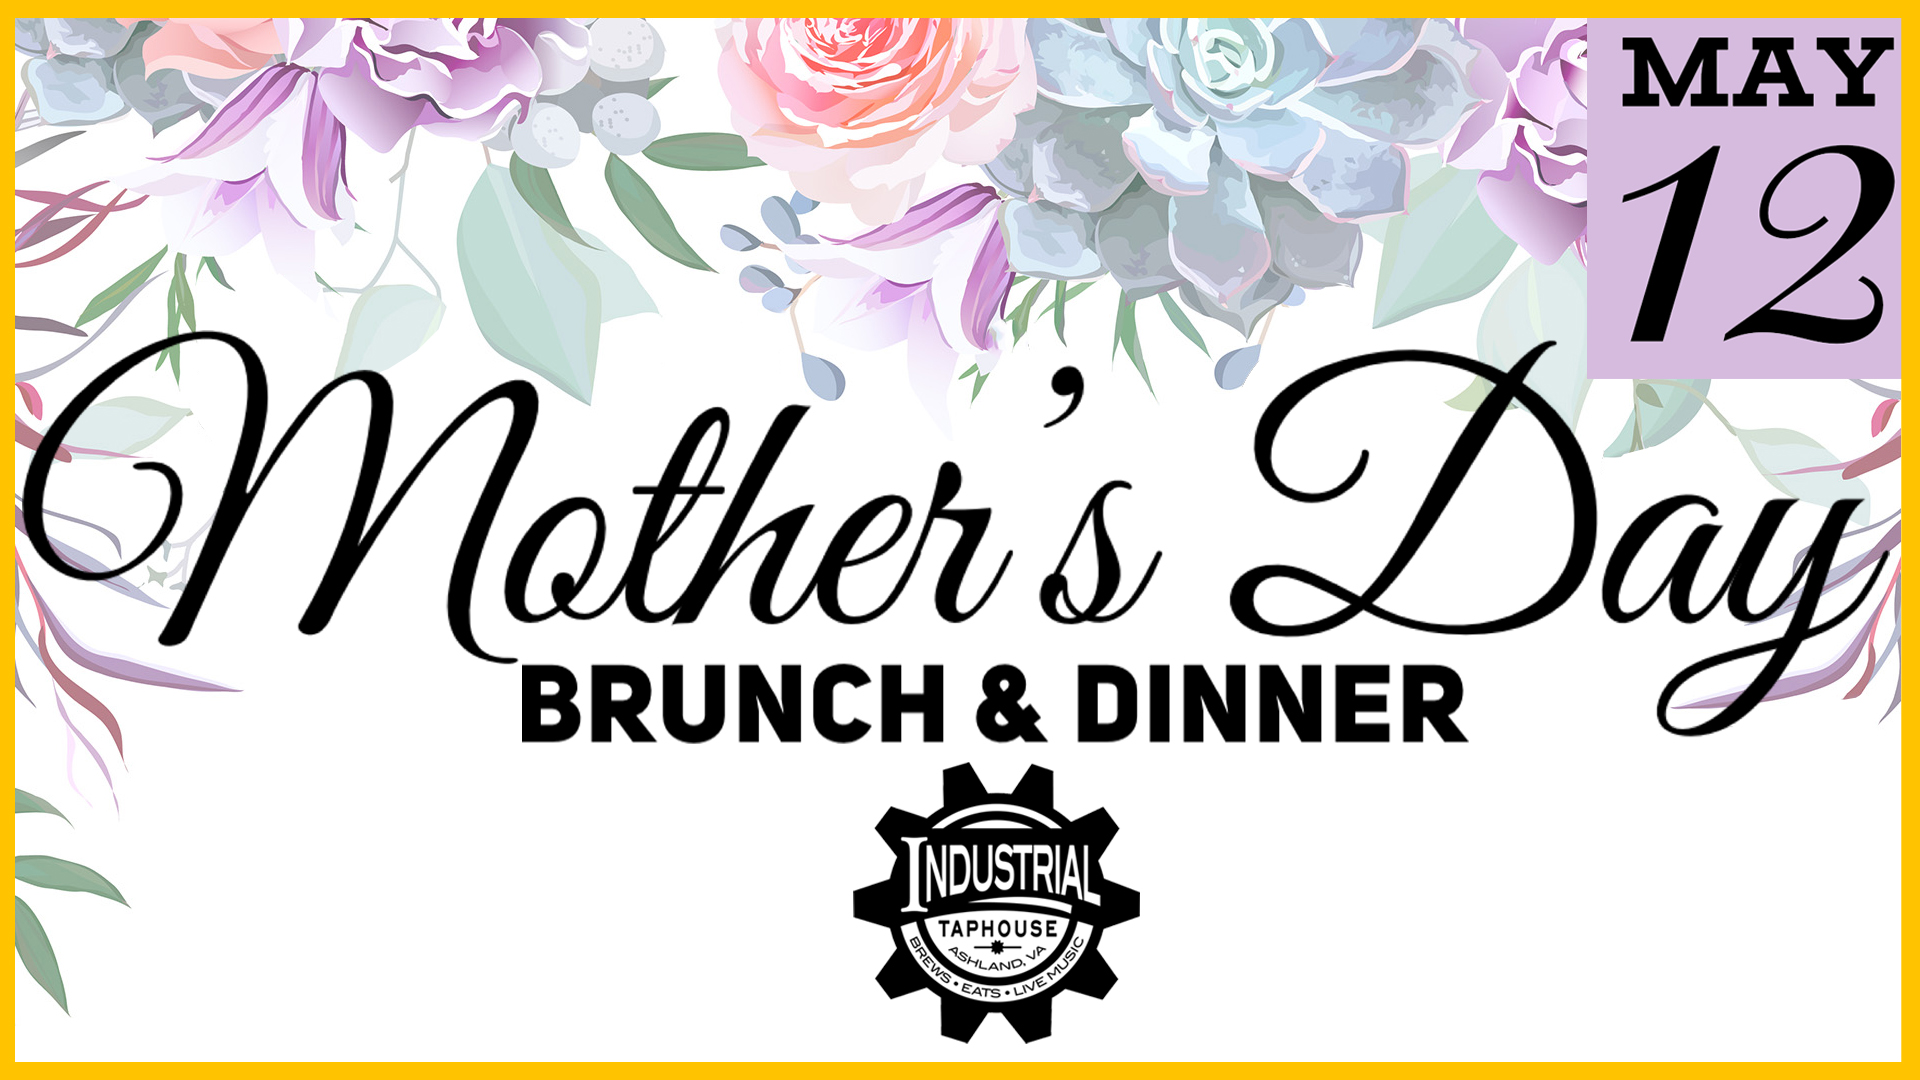 mothers day, brunch, dinner, lunch specials, dinner specials, mimosas, momosas, live music, industrial taphouse, Thursday night, best bar, best burger, craft beer, best new restaurant, ashland, Virginia, cotu, rva